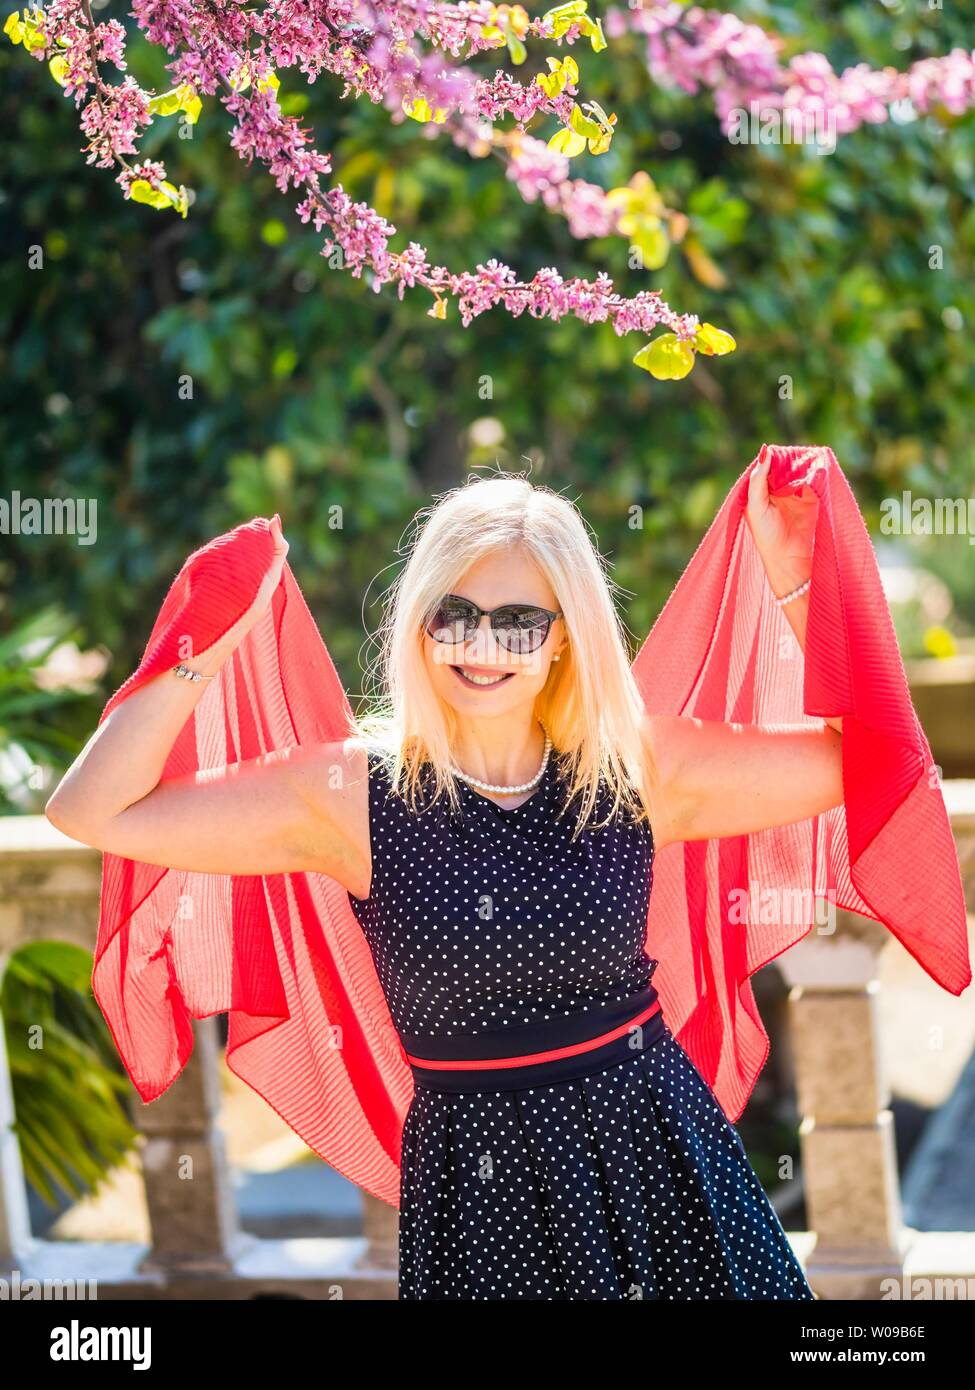 Attractive blonde woman in natural environment mid-day sunshine sunlight spreading hands apart Red robe fabric under Pink flowers in garden smiling Stock Photo